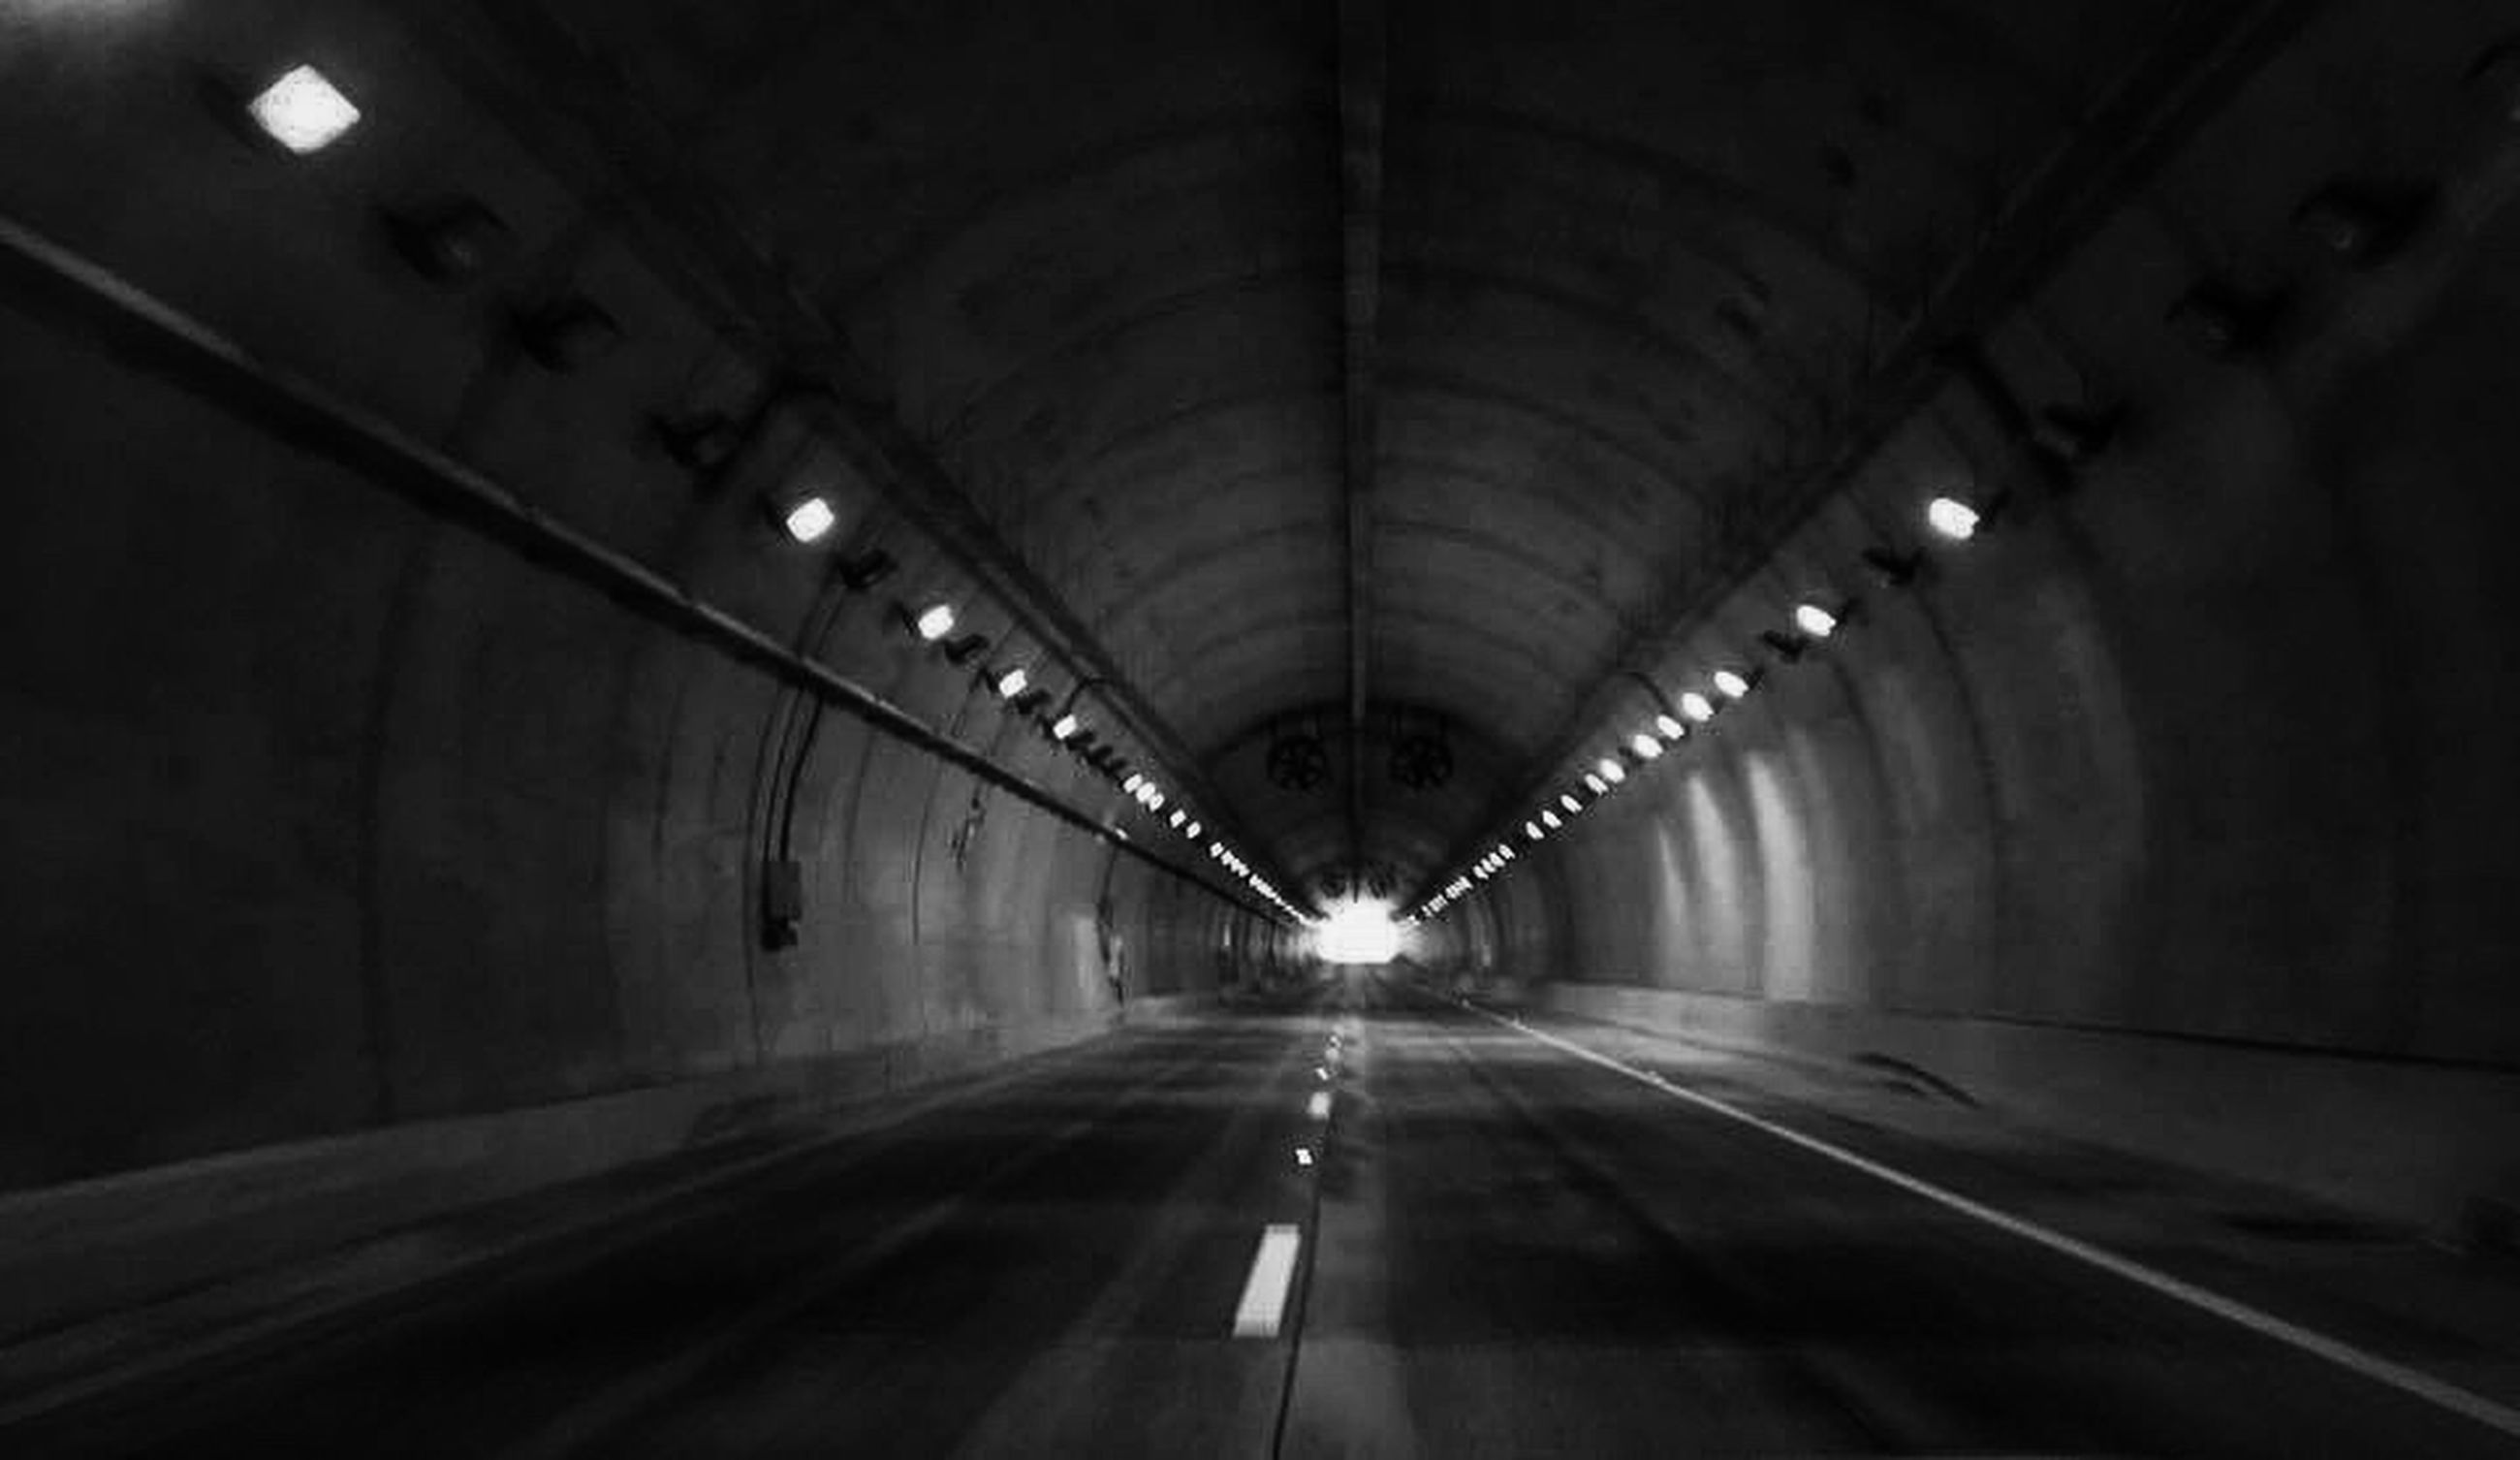 indoors, the way forward, illuminated, tunnel, diminishing perspective, ceiling, transportation, vanishing point, lighting equipment, empty, built structure, architecture, night, arch, light - natural phenomenon, long, corridor, road, interior, light at the end of the tunnel